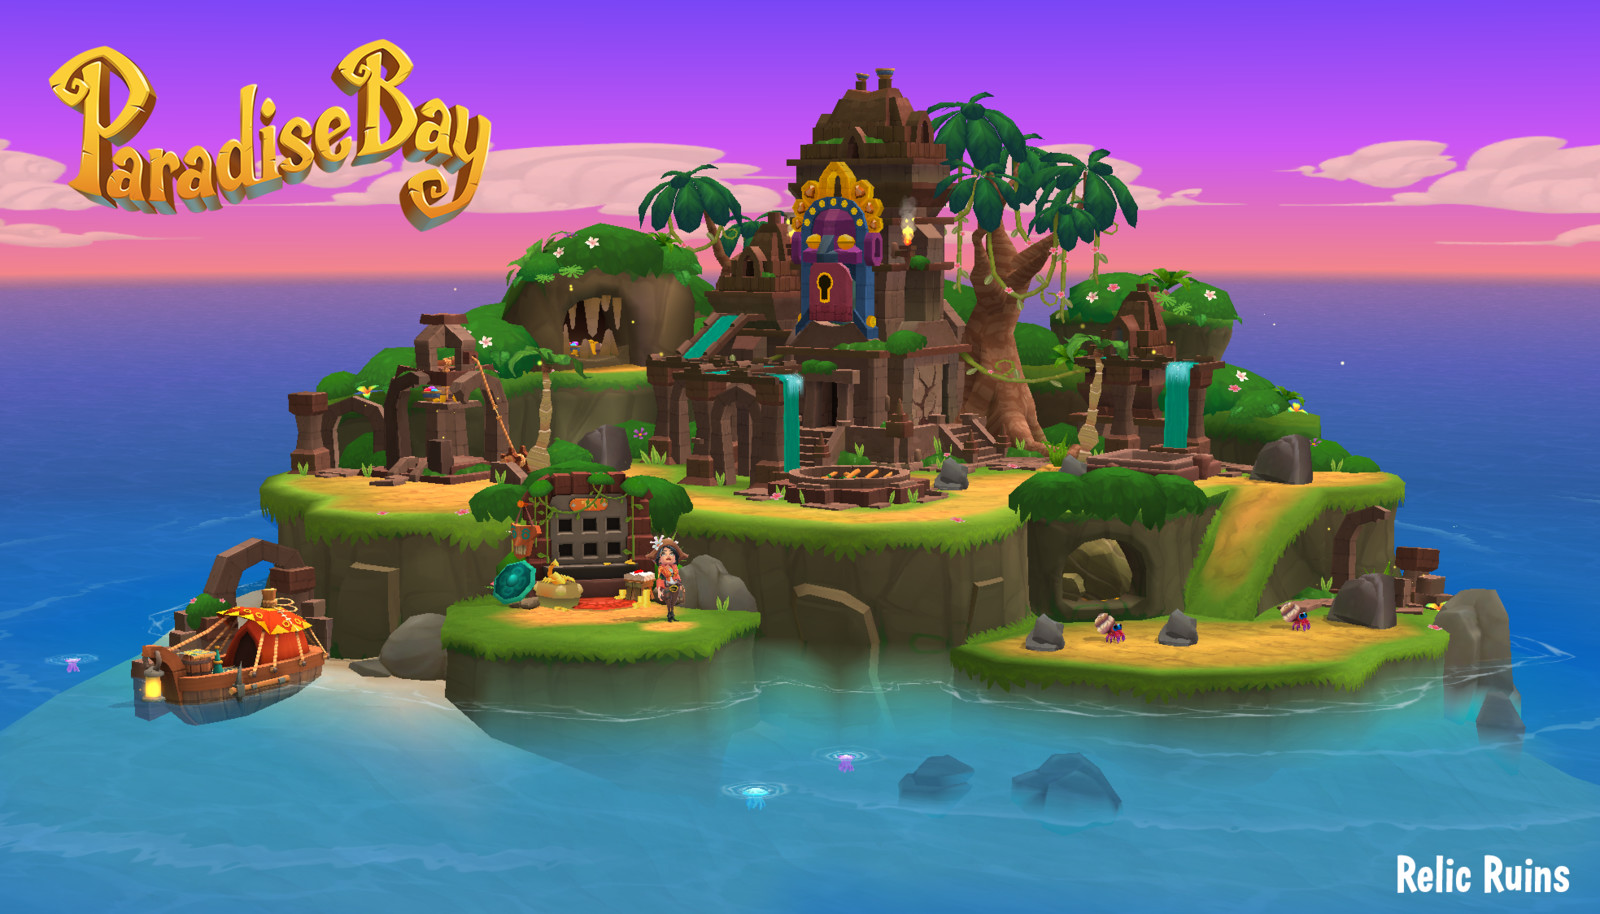 Relic Ruins for Paradise Bay (mobile)